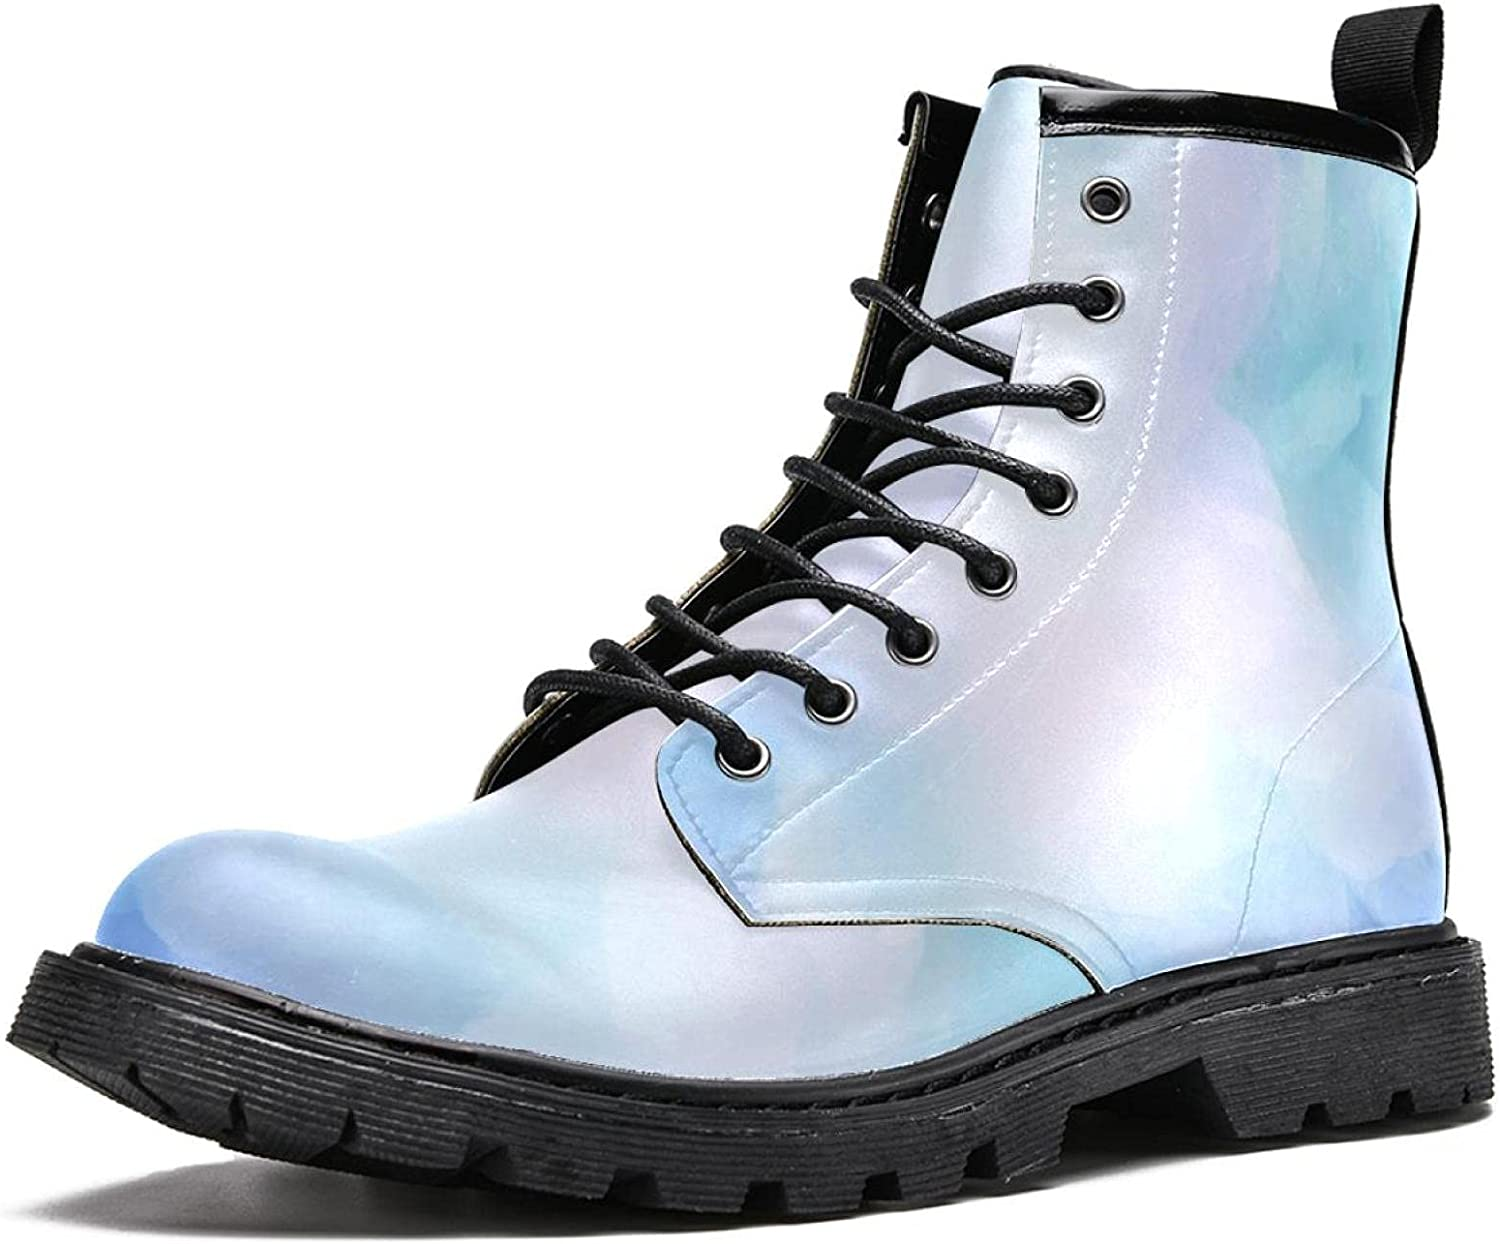 Men's Classic Award-winning store 16-Eye PU Leather Vibrant New sales Blue Watercolor Boot